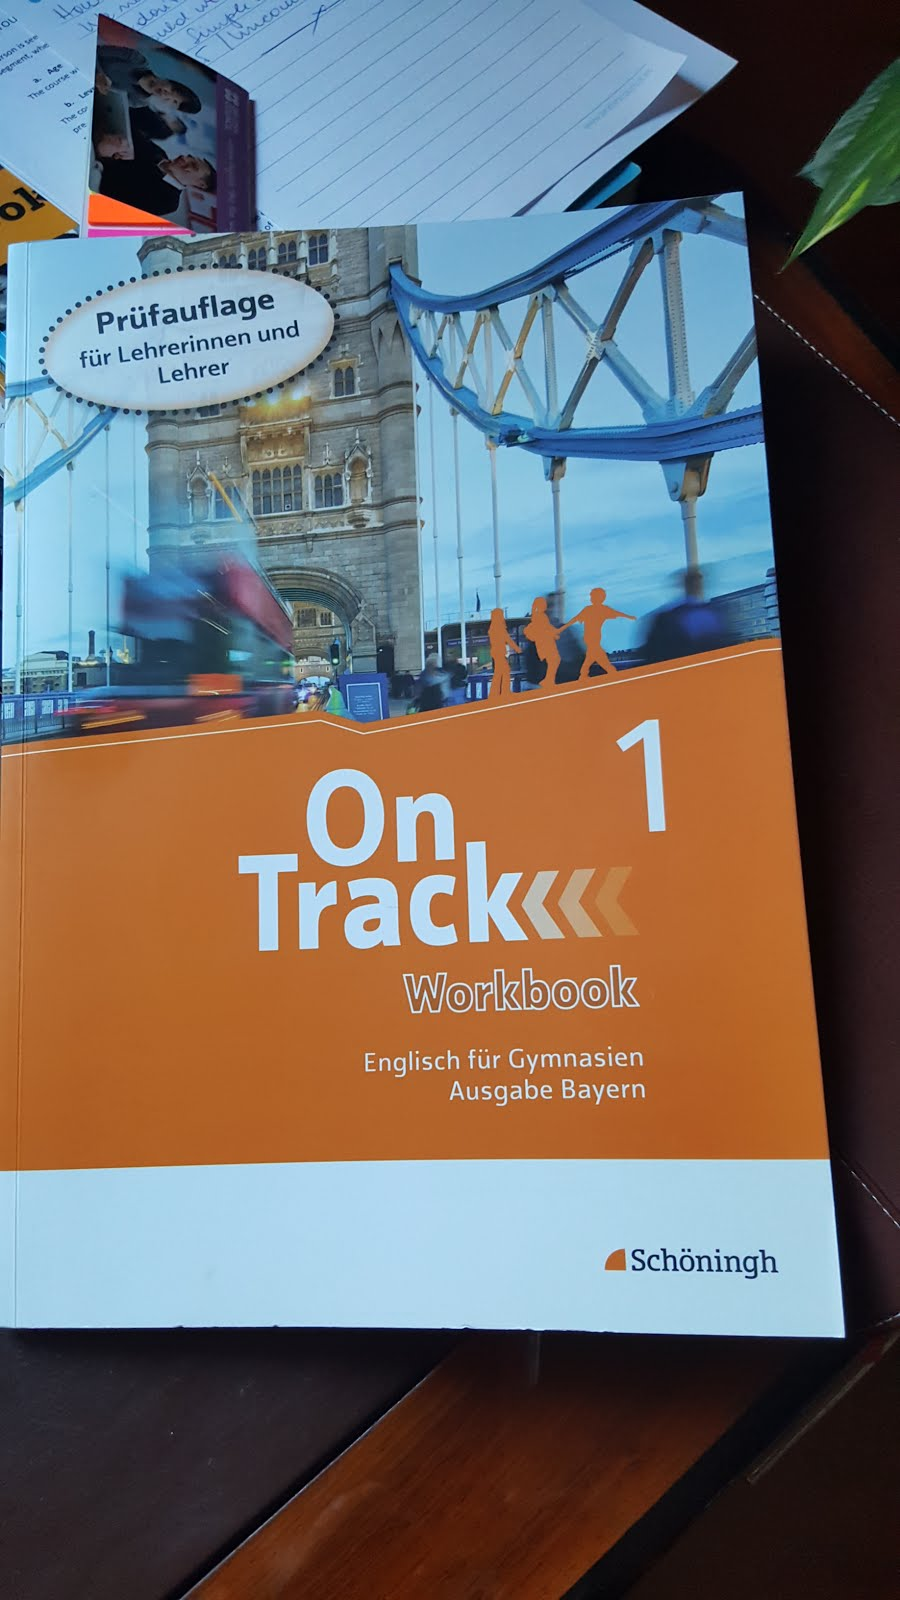 On Track 1 - Workbook